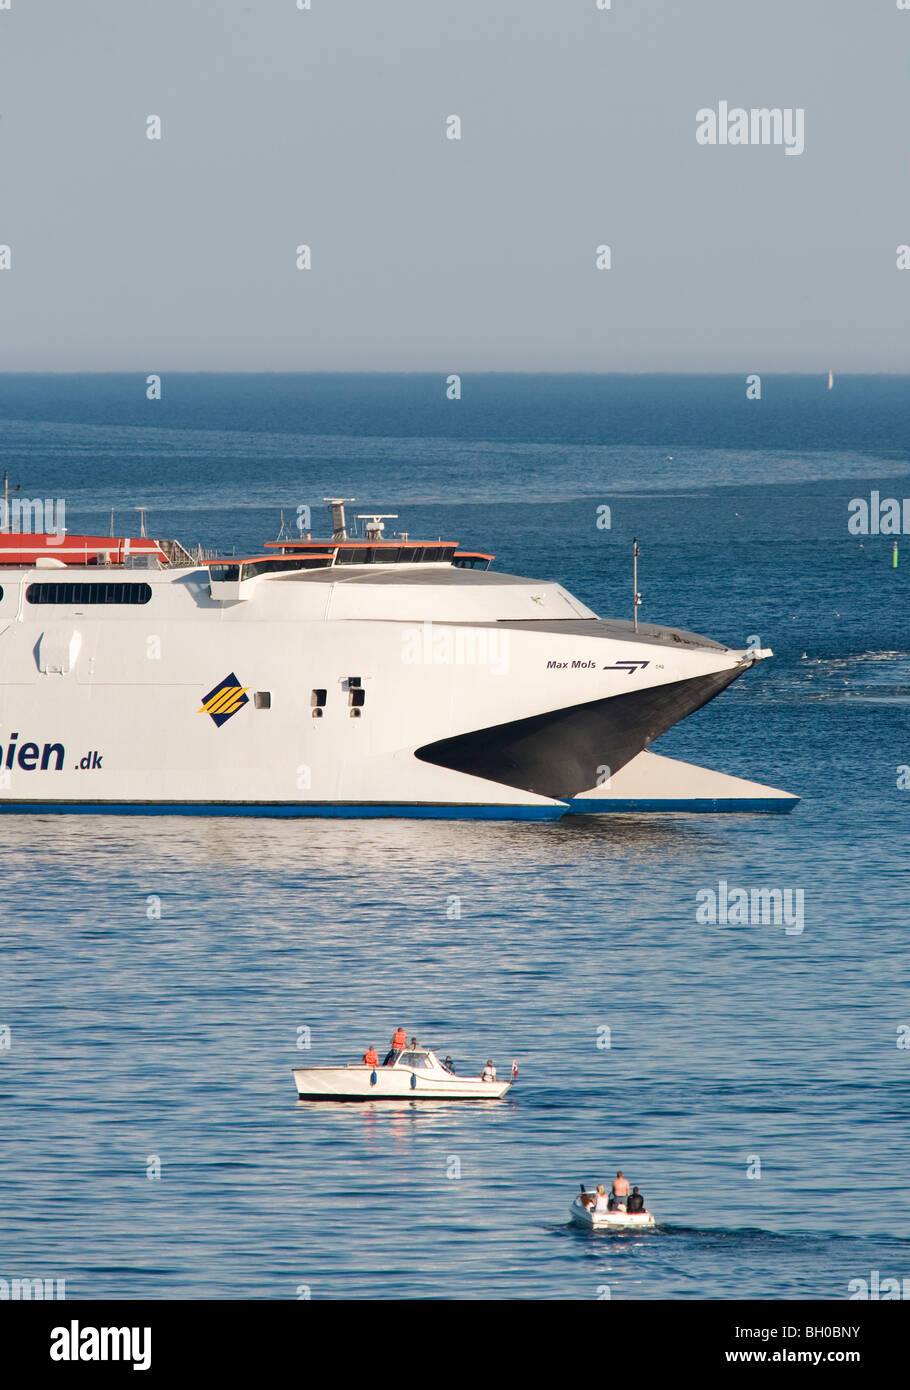 A Mols-Linien ferry. - Stock Image